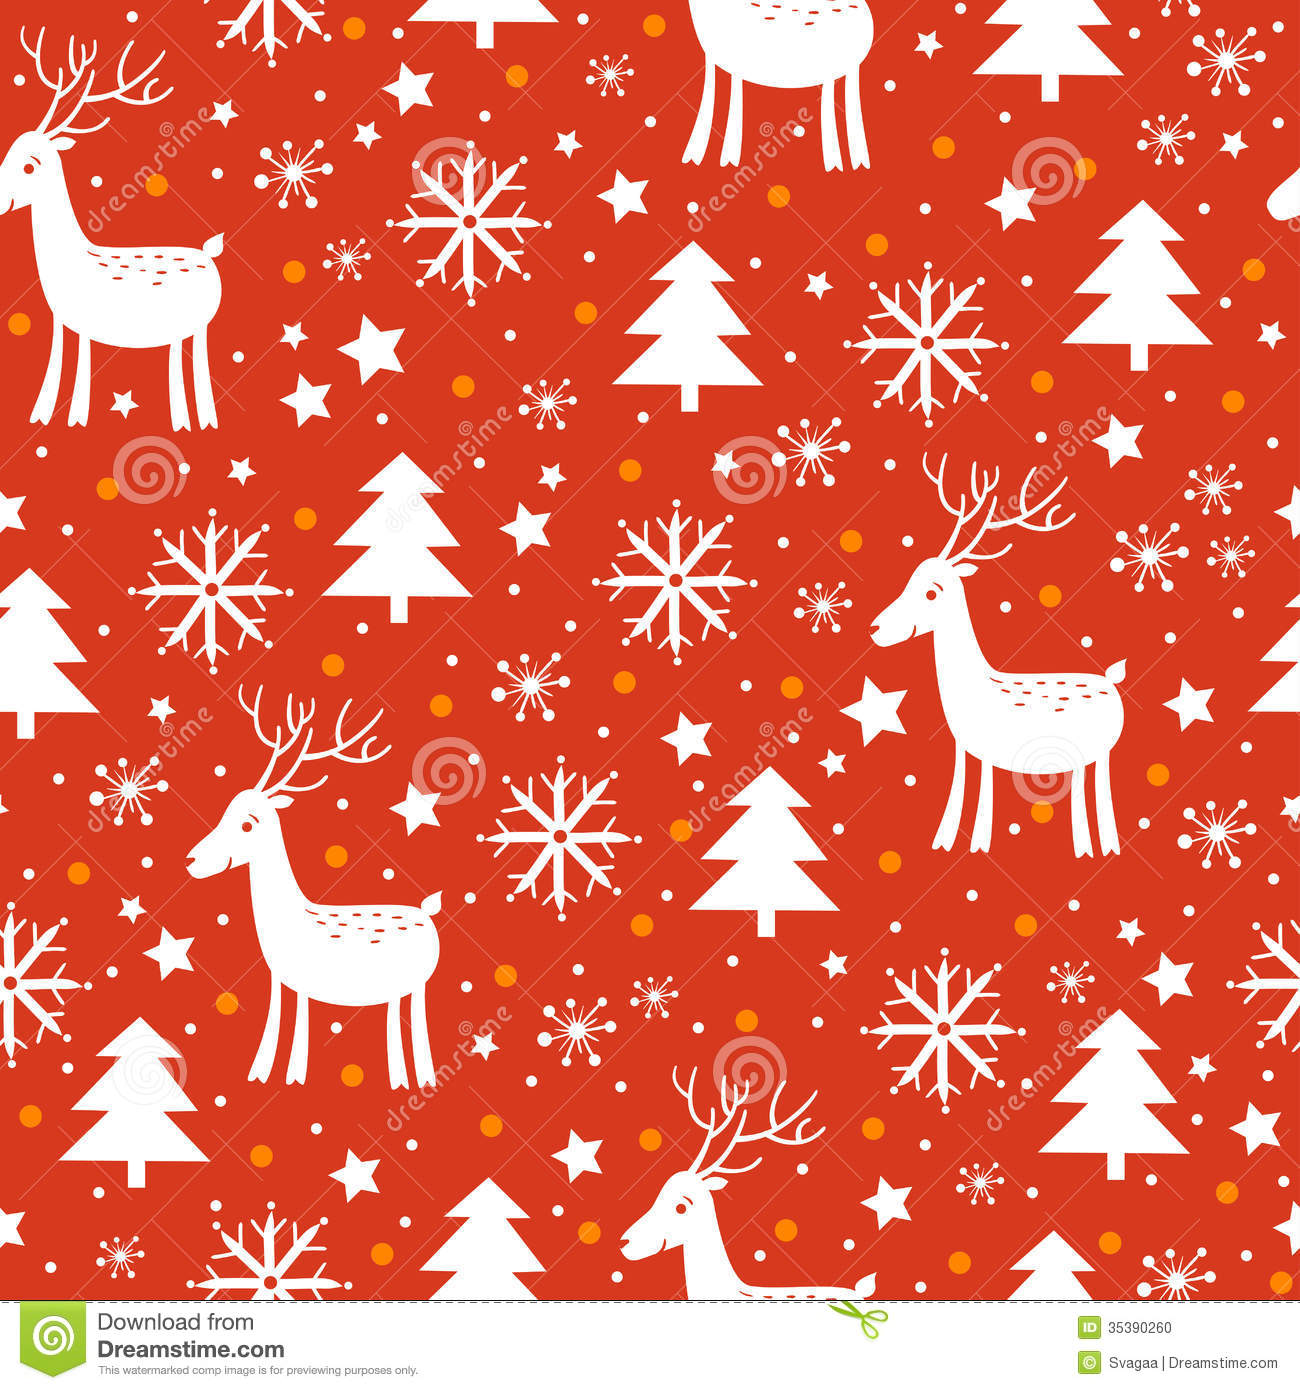 Christmas Background With Deer And Snowflakes Stock Photo - Image ...